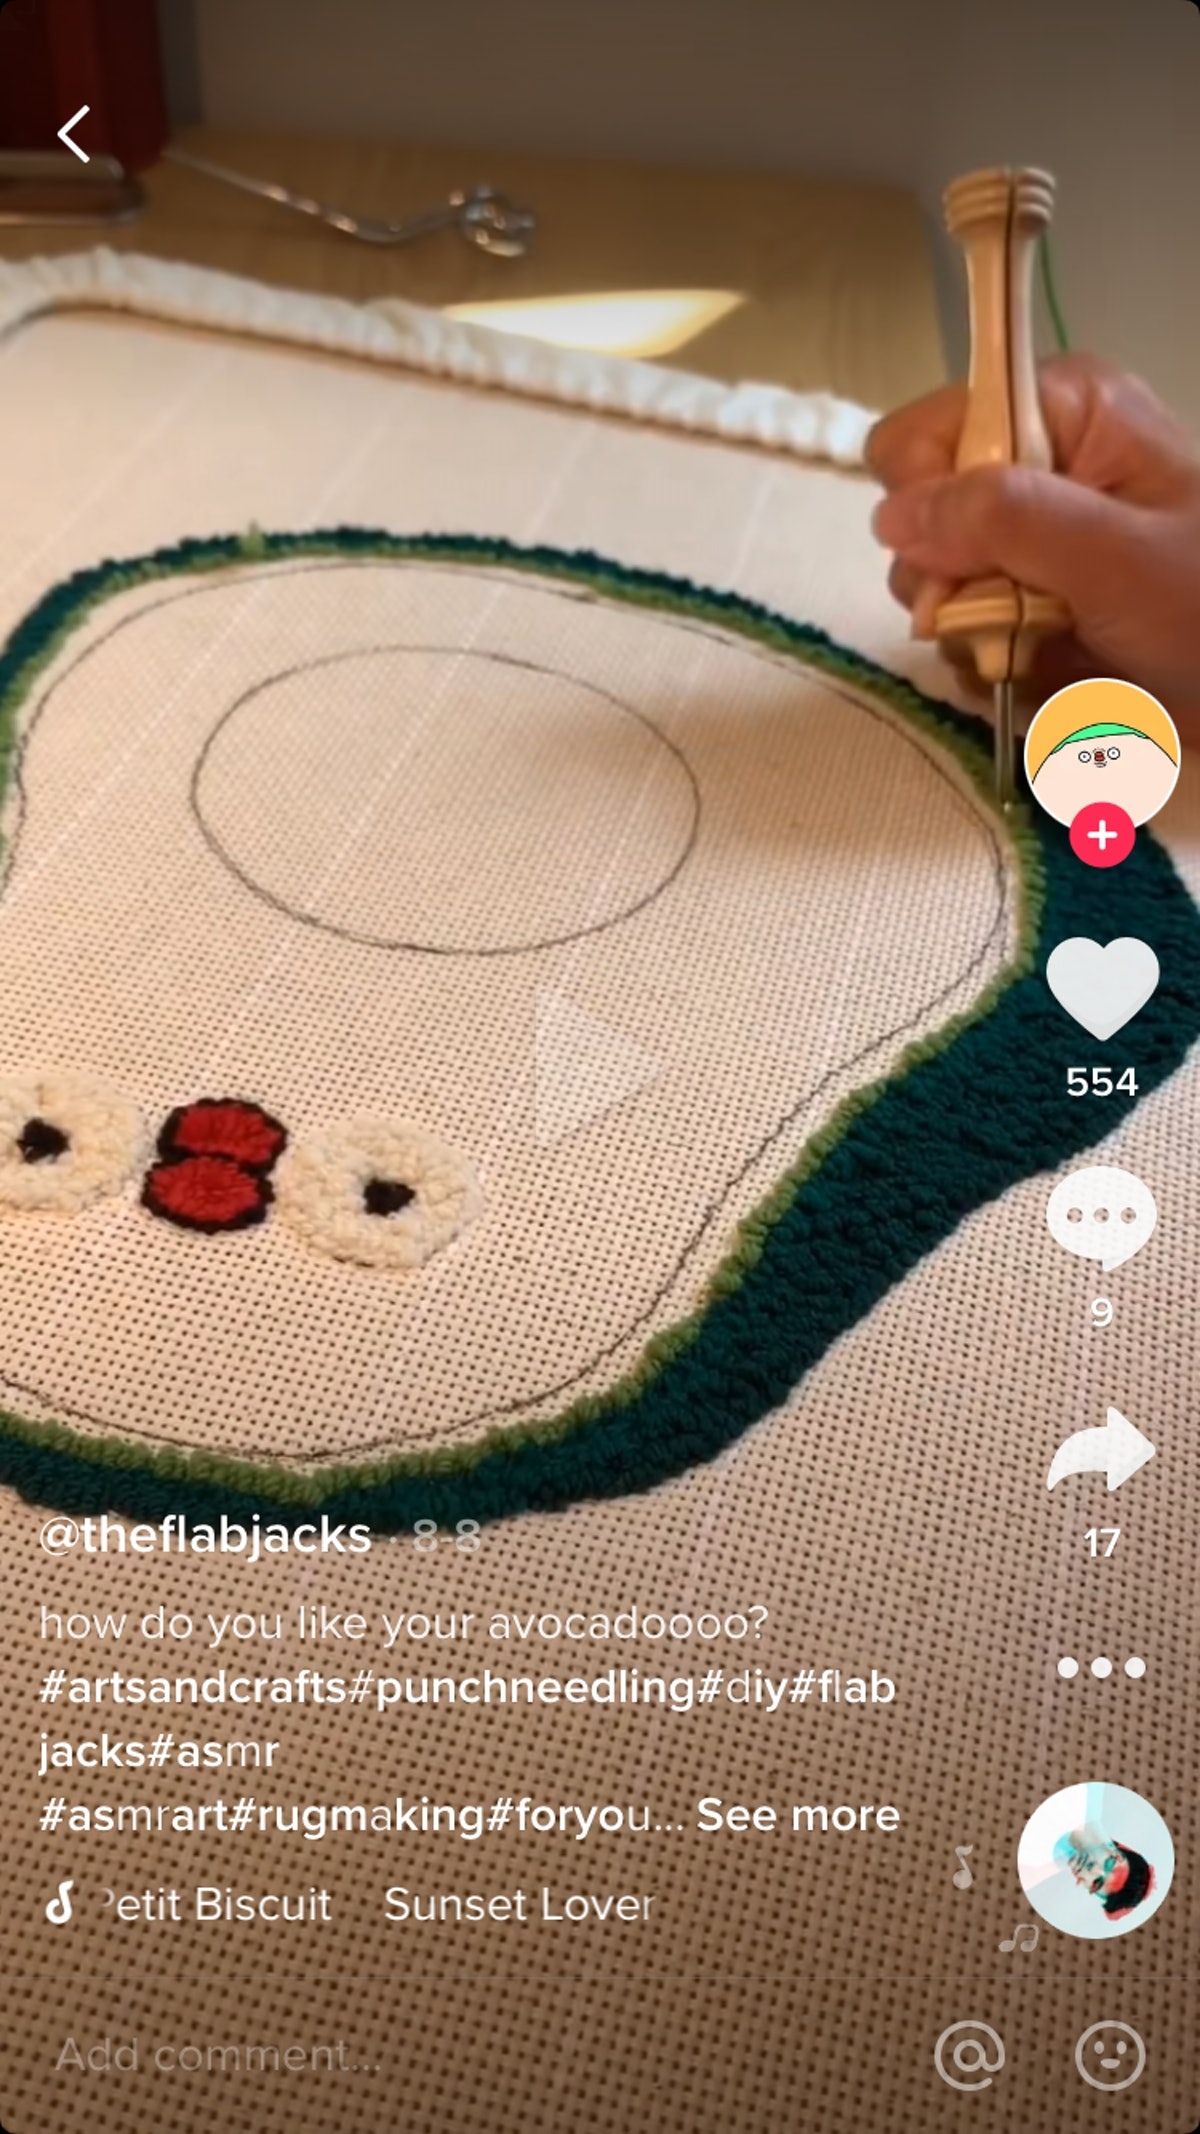 @theflabjacks shows off his cute new avocado rug on TikTok and his process making it with a punch needle